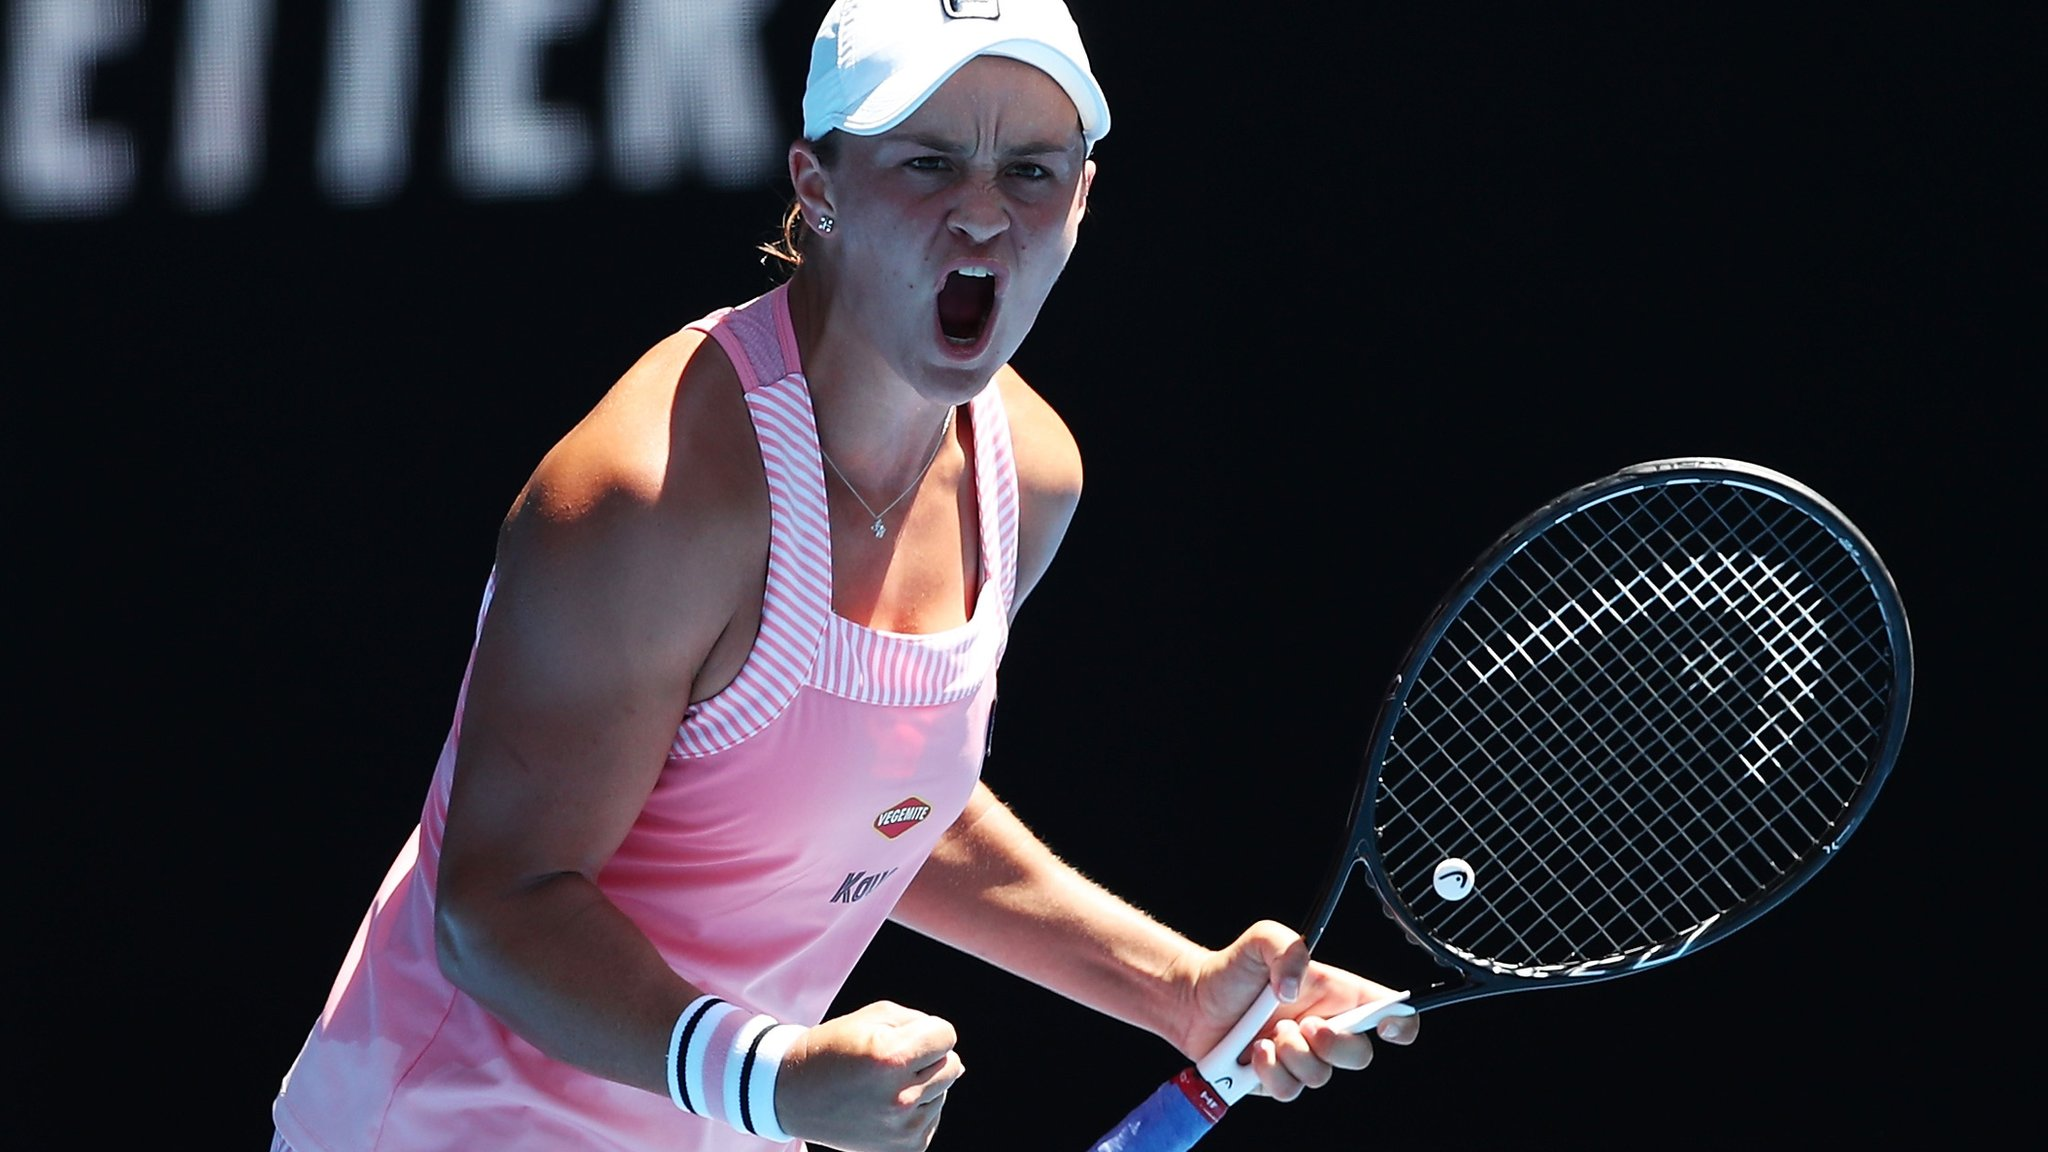 Barty beats Sharapova to reach first Grand Slam quarter-final